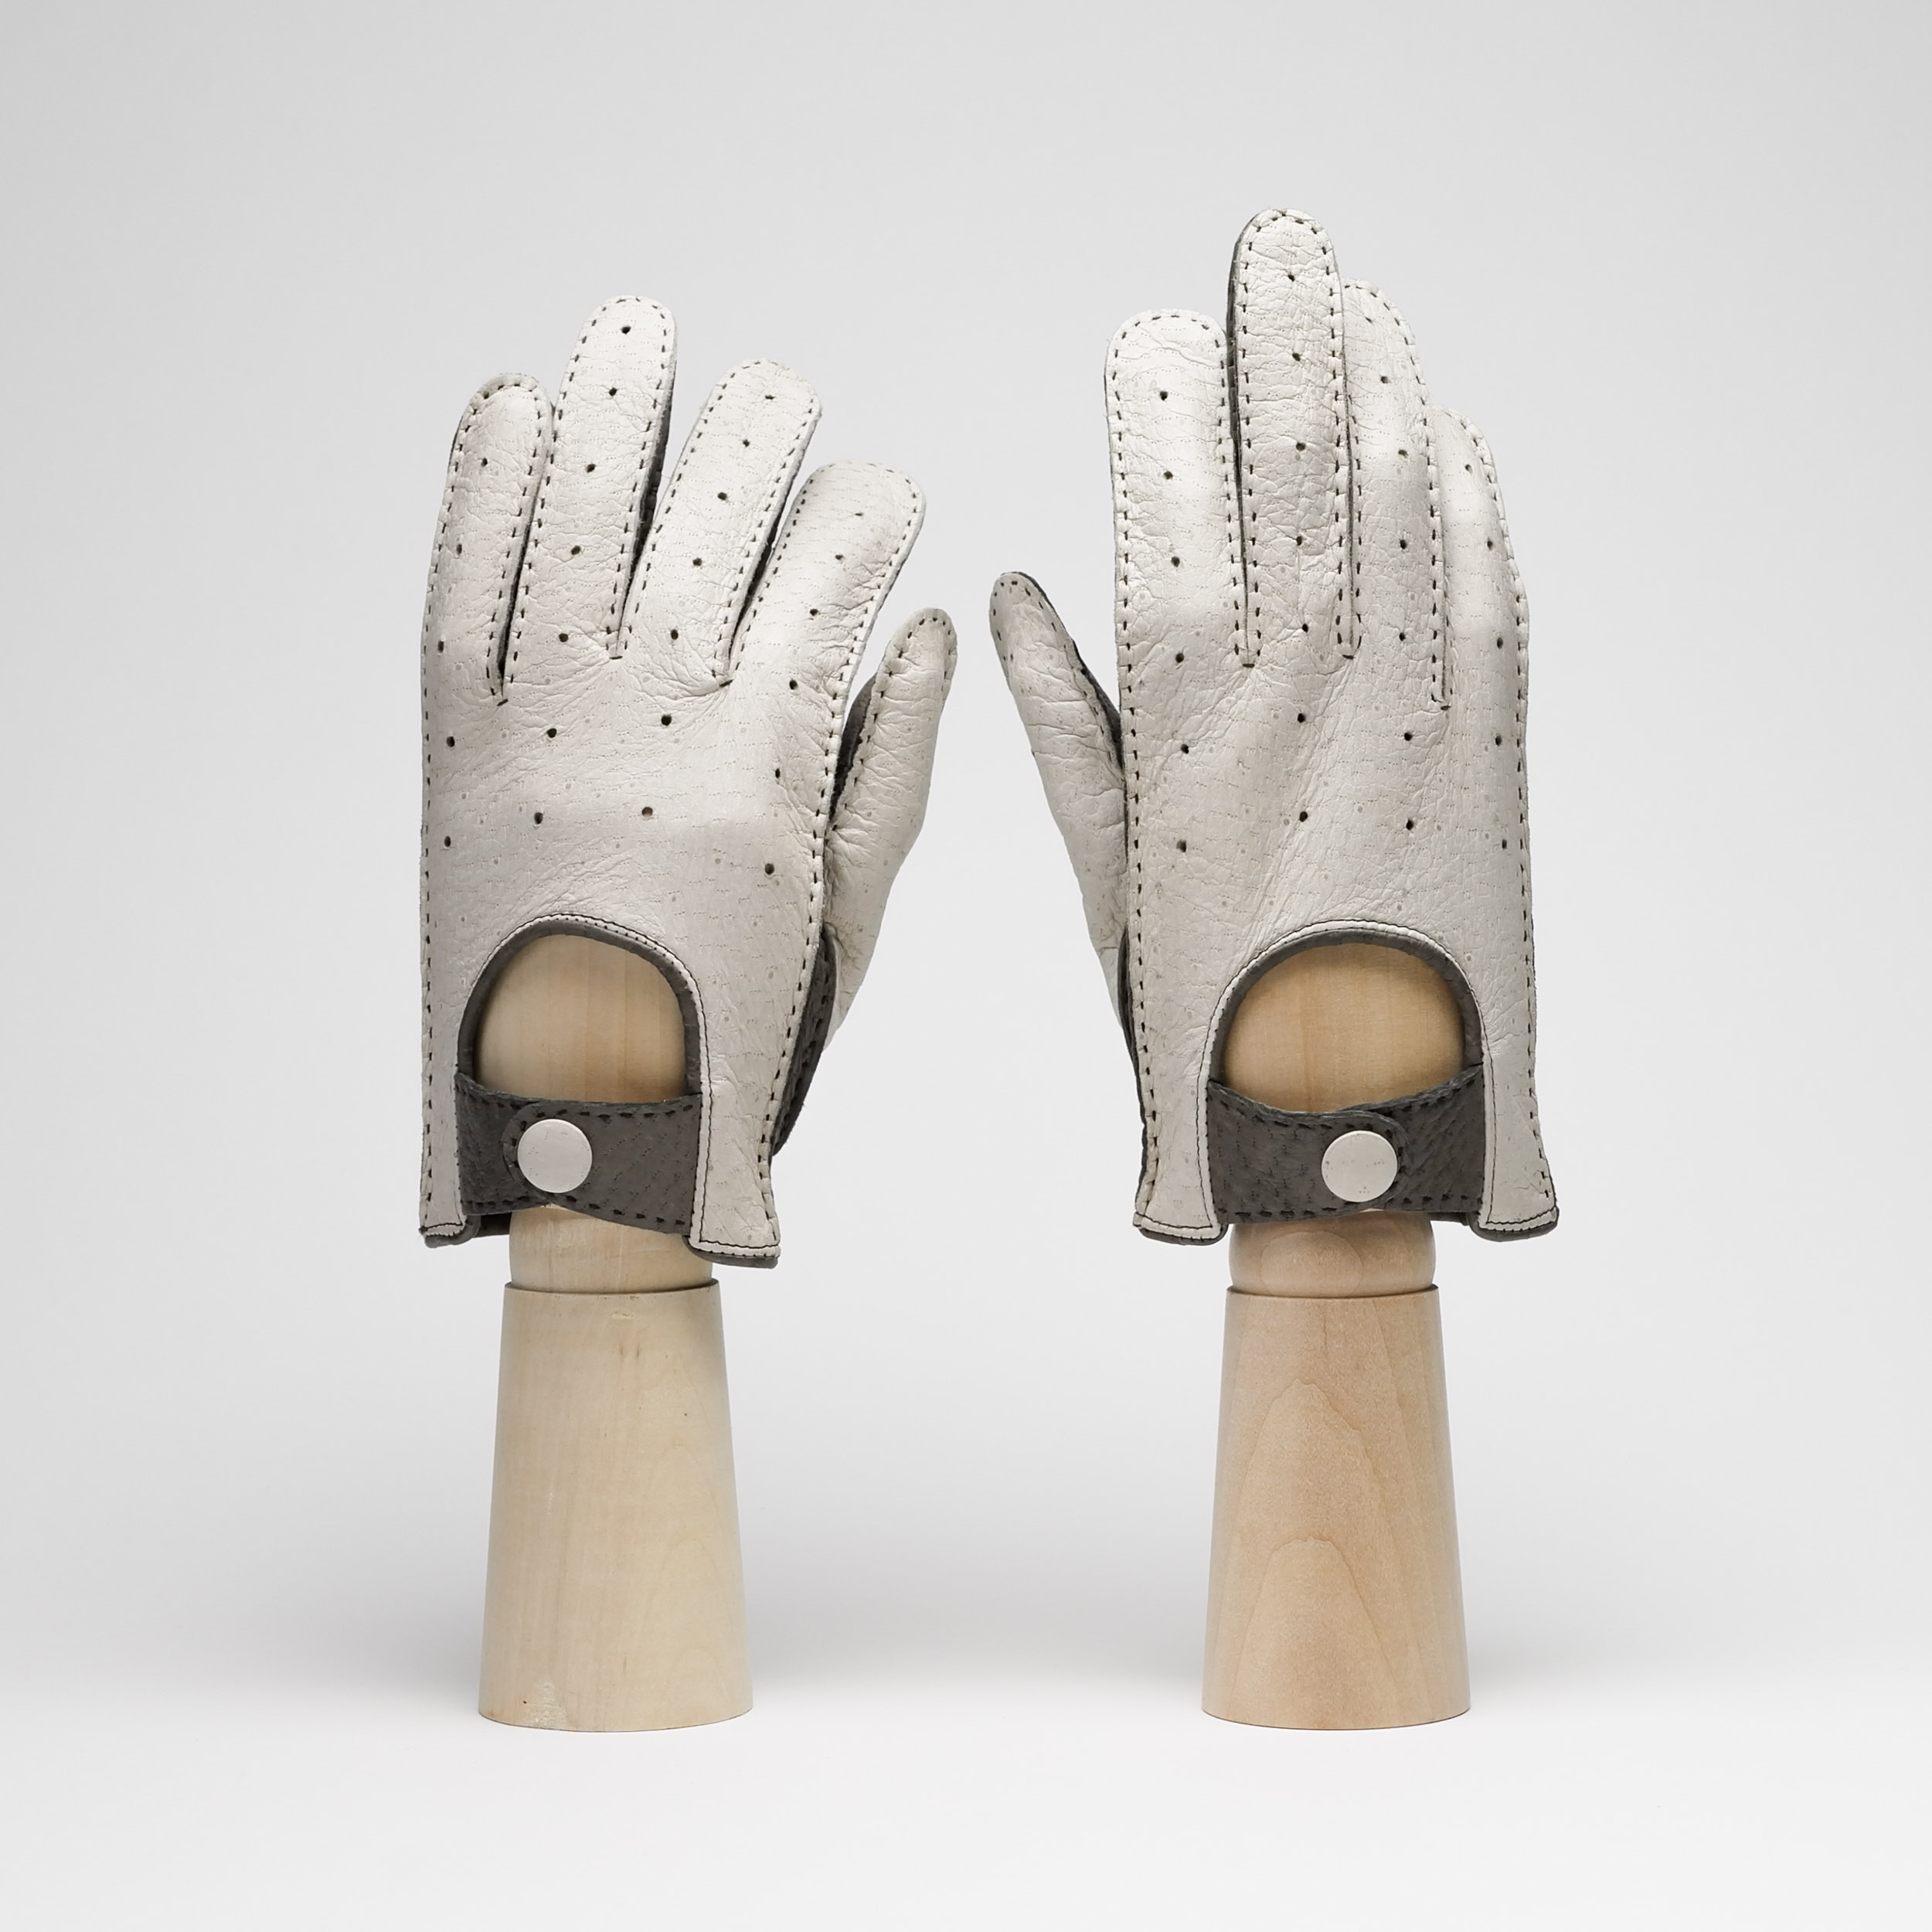 Thomas Riemer table cut gloves